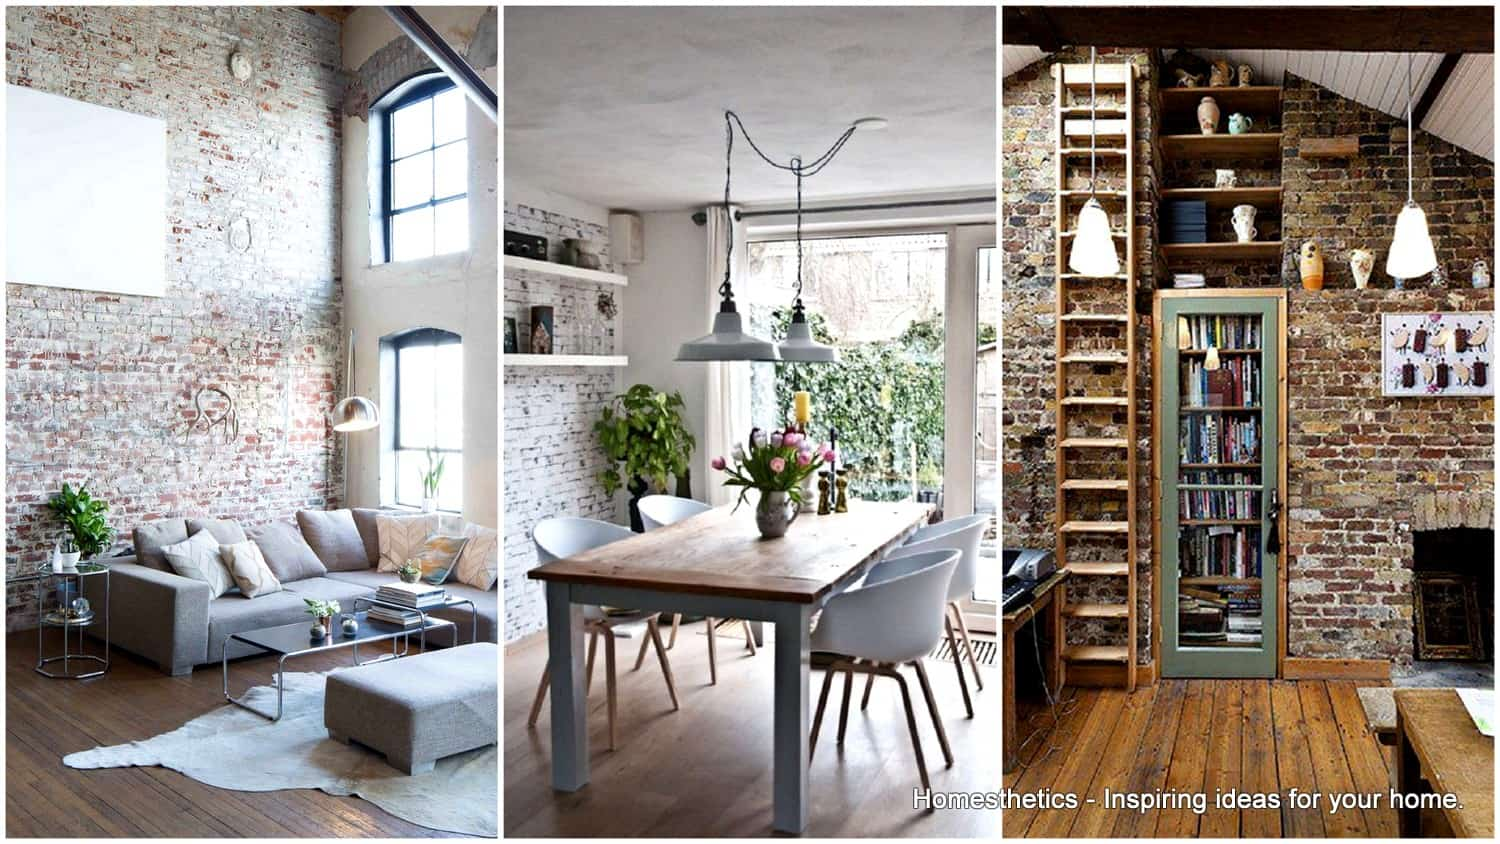 20 Exposed Brick Walls That Will Blow Your Mind Homesthetics Inspiring Ideas For Your Home